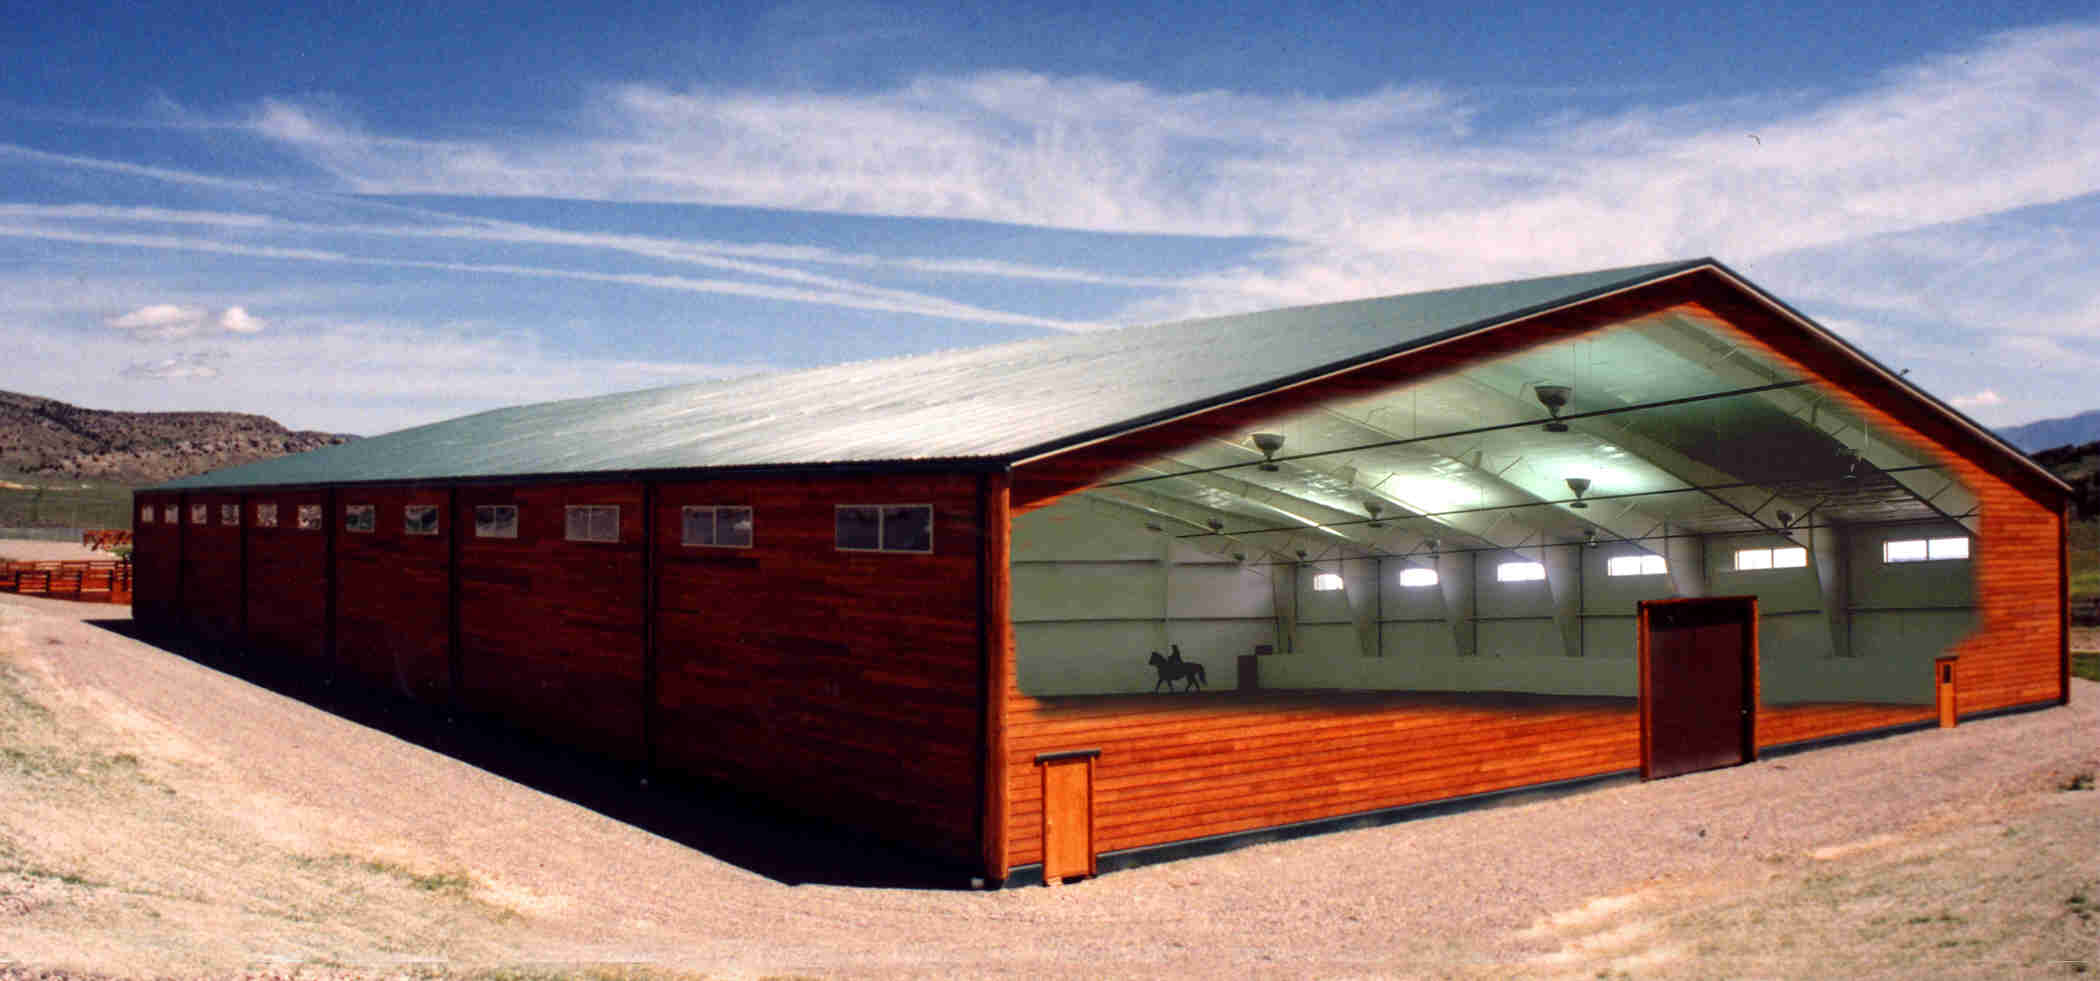 Warehouse Designer Steel Buildings A Growing Trend In The Construction